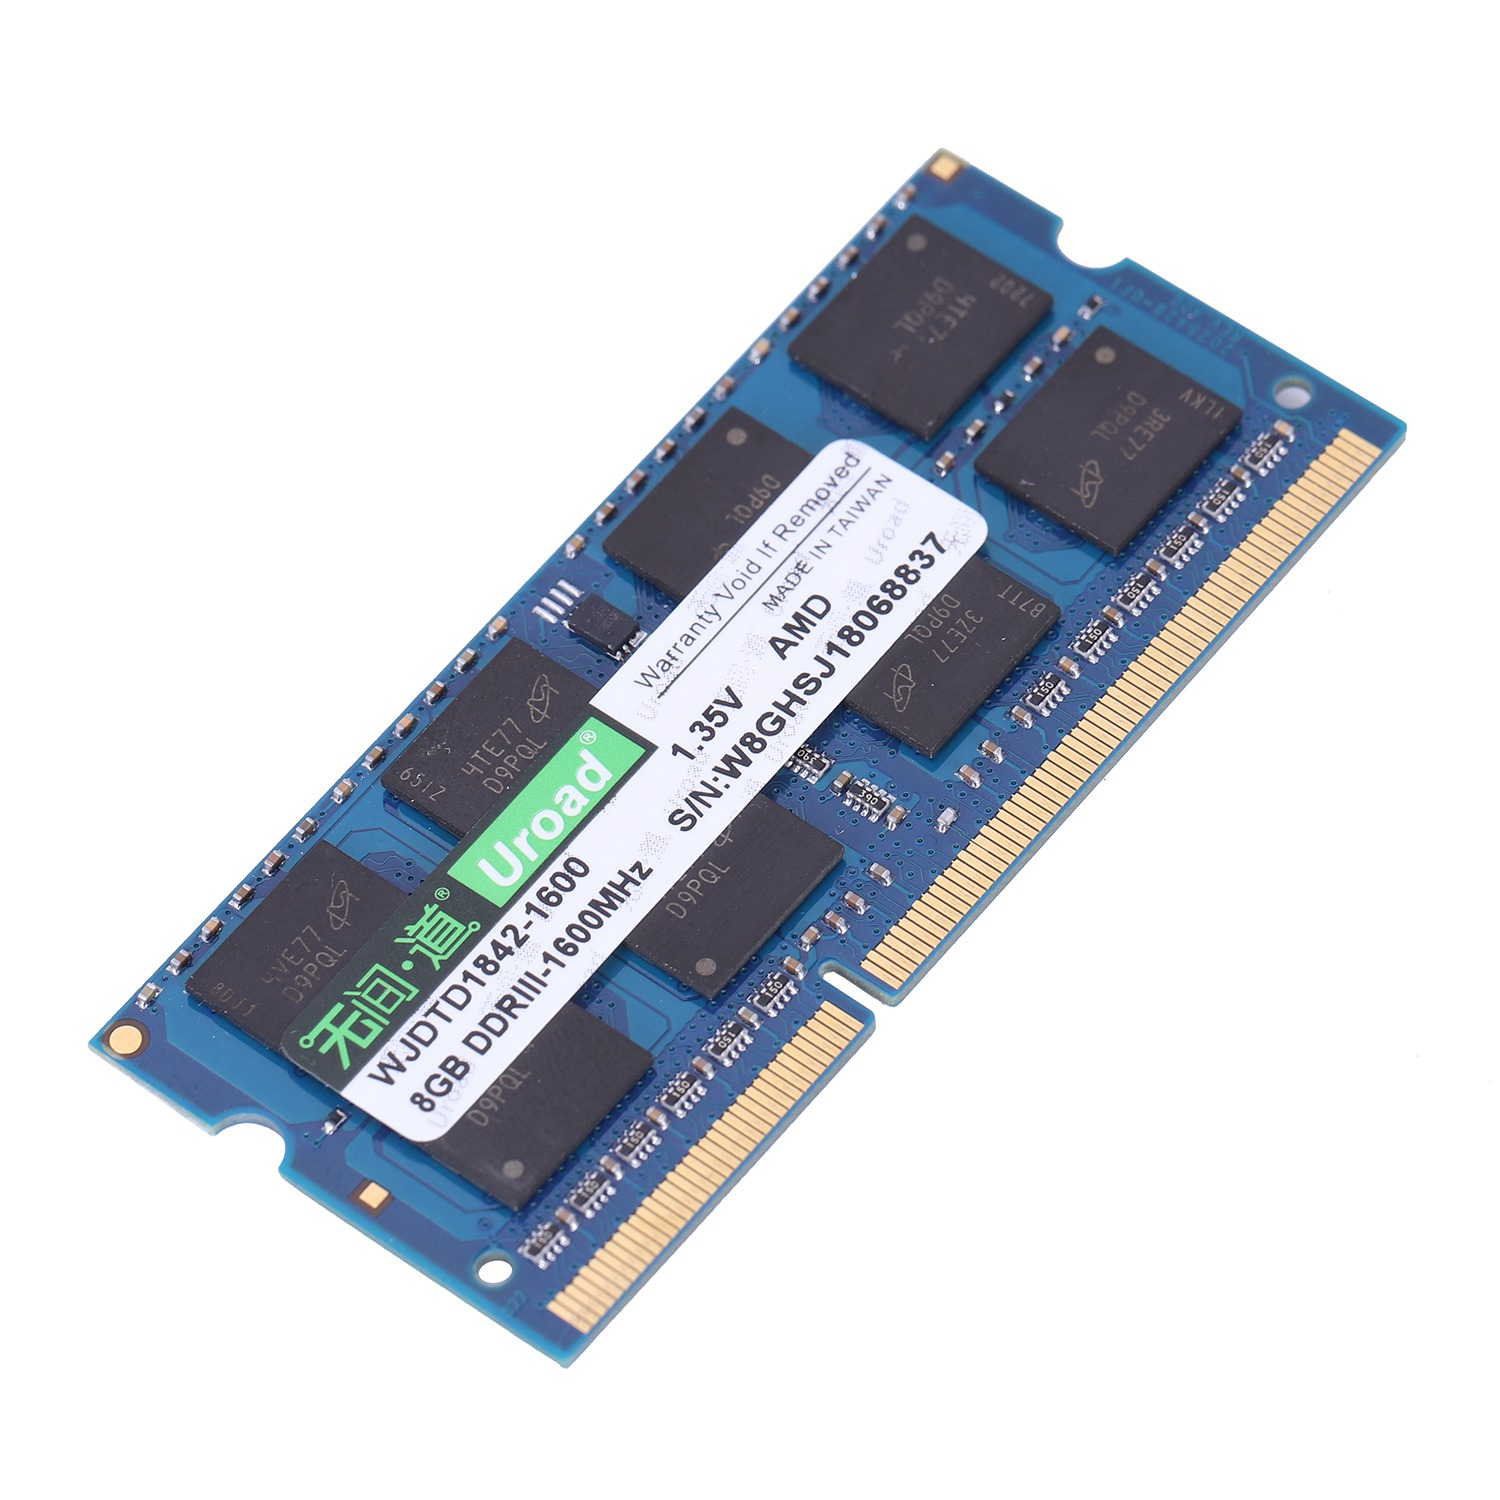 Uroad DDR 3 Uroad DDR 3l Memory RAM 1600Mhz 1.35V For AMD Laptop PC Notebook